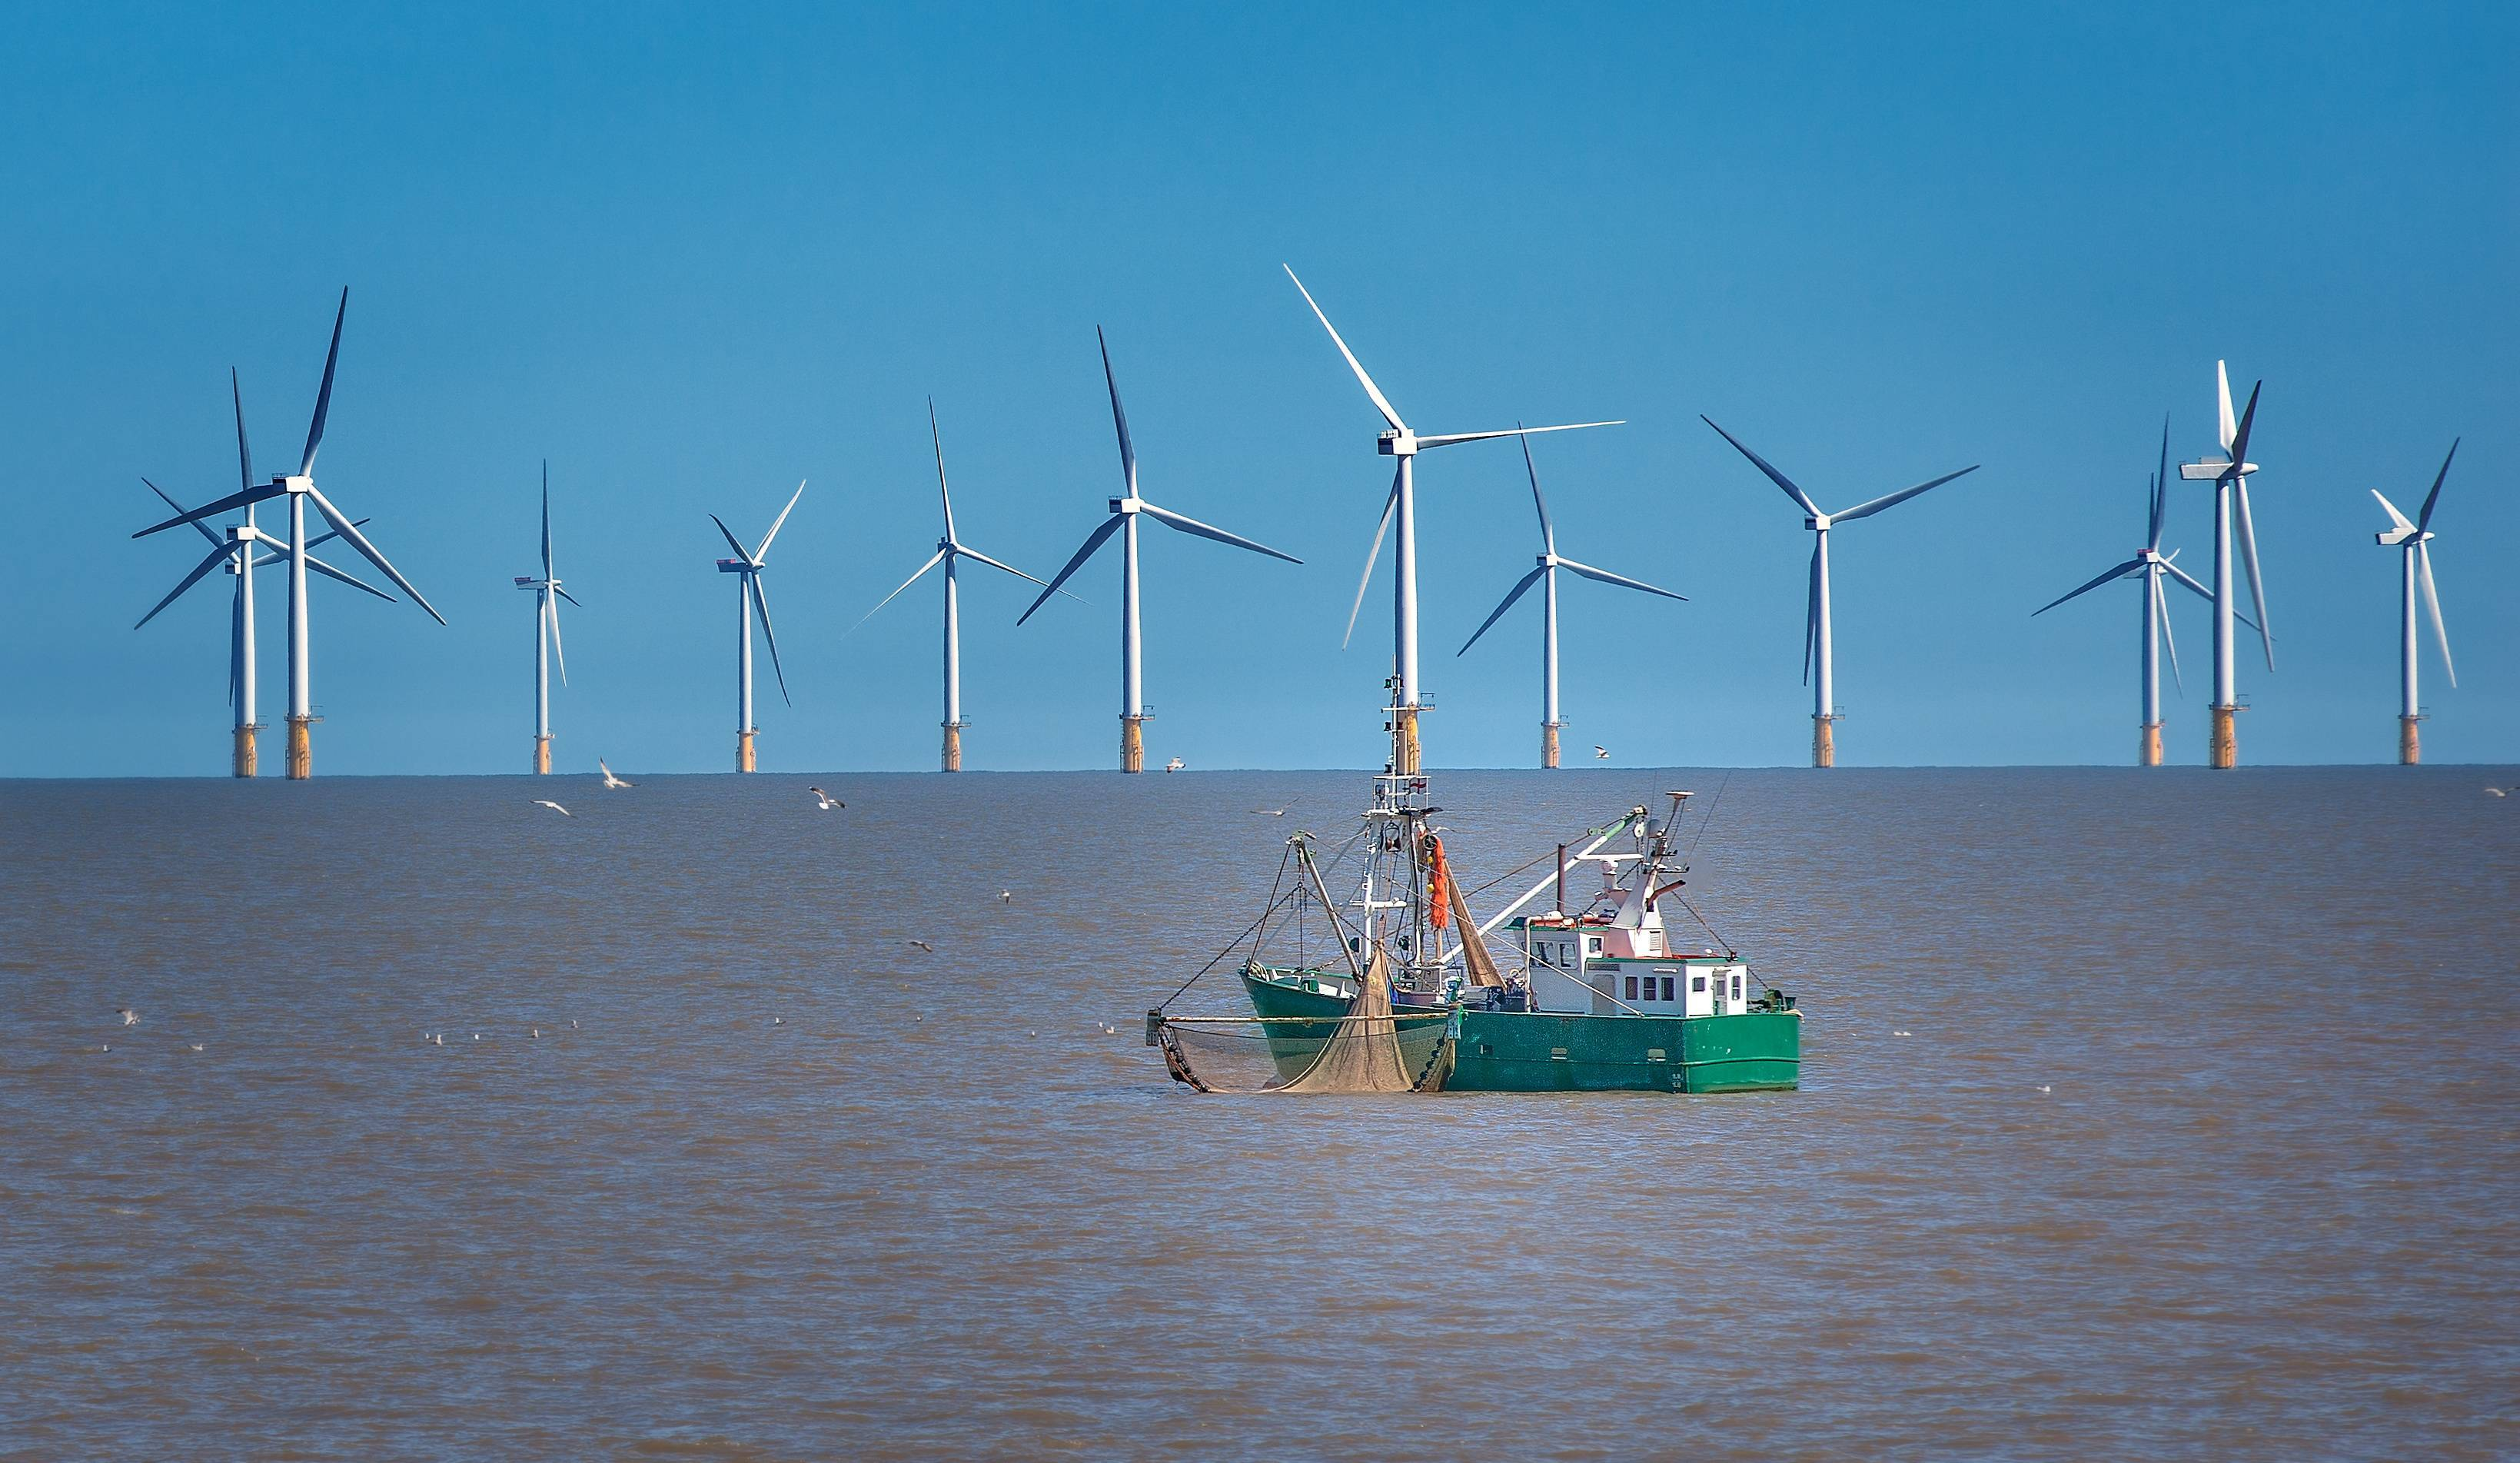 FishingOffshoreWind